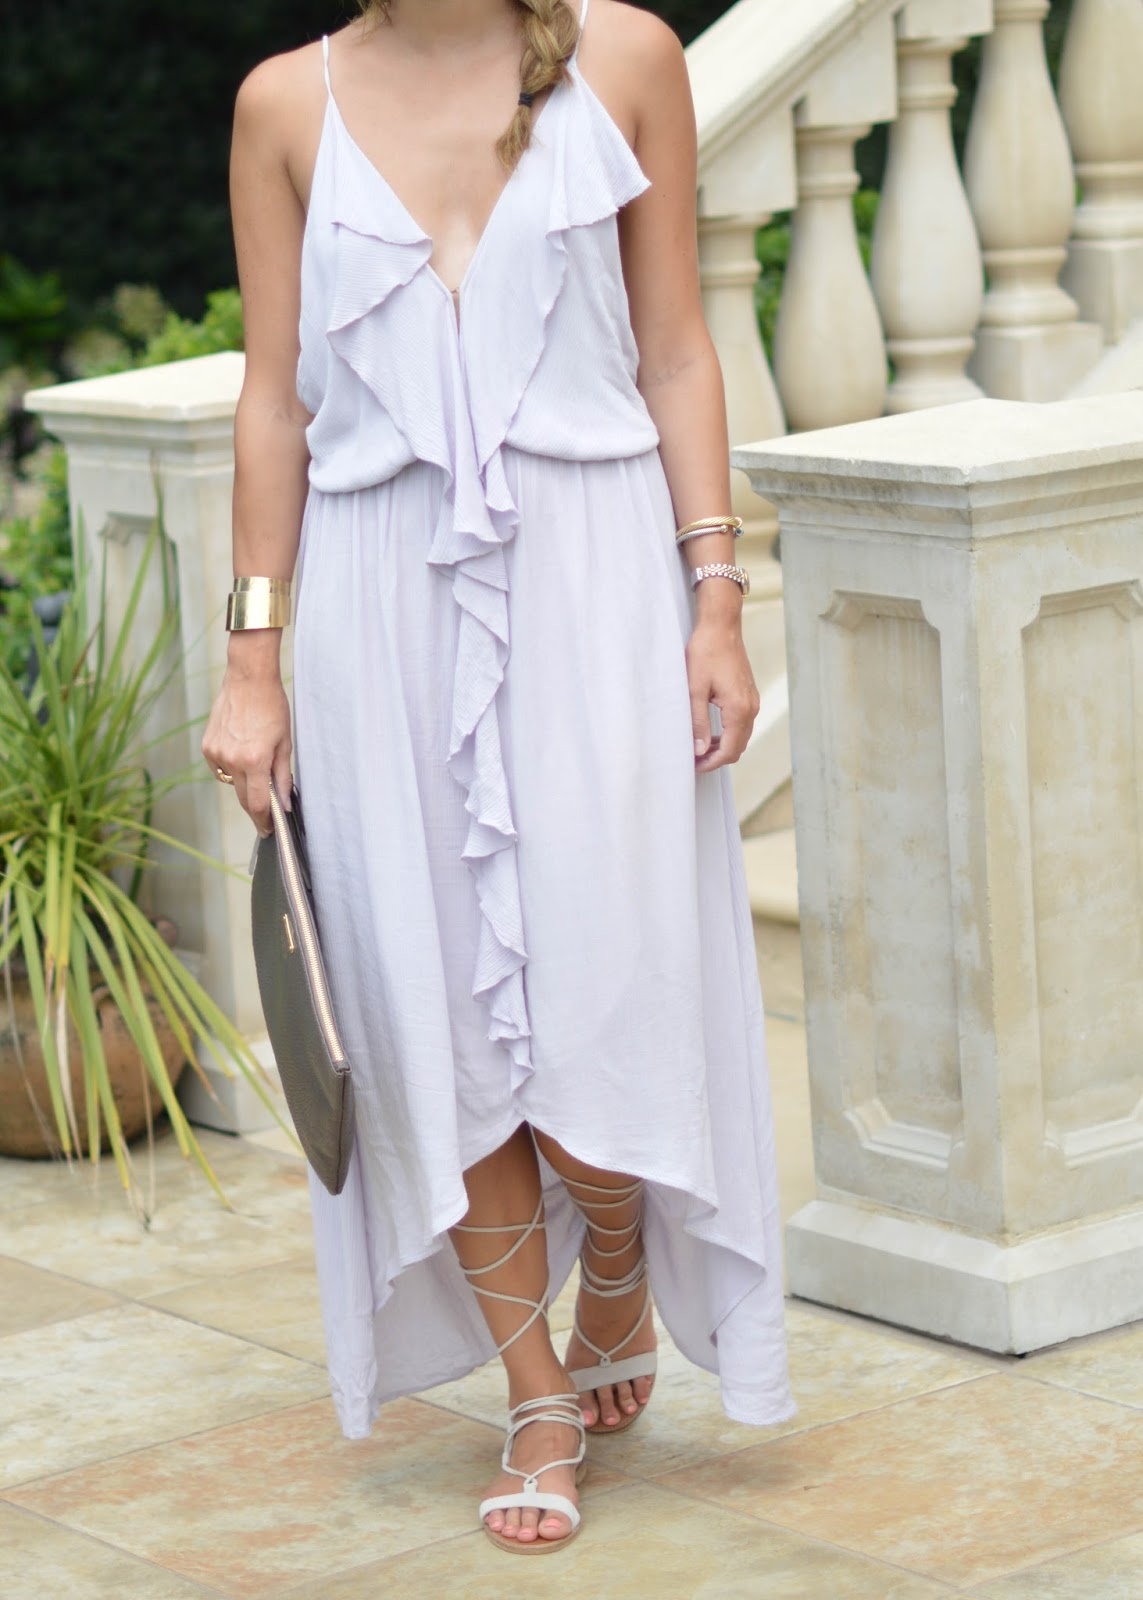 flowy purple dress / Southern Style / lace up sandals / resort wear